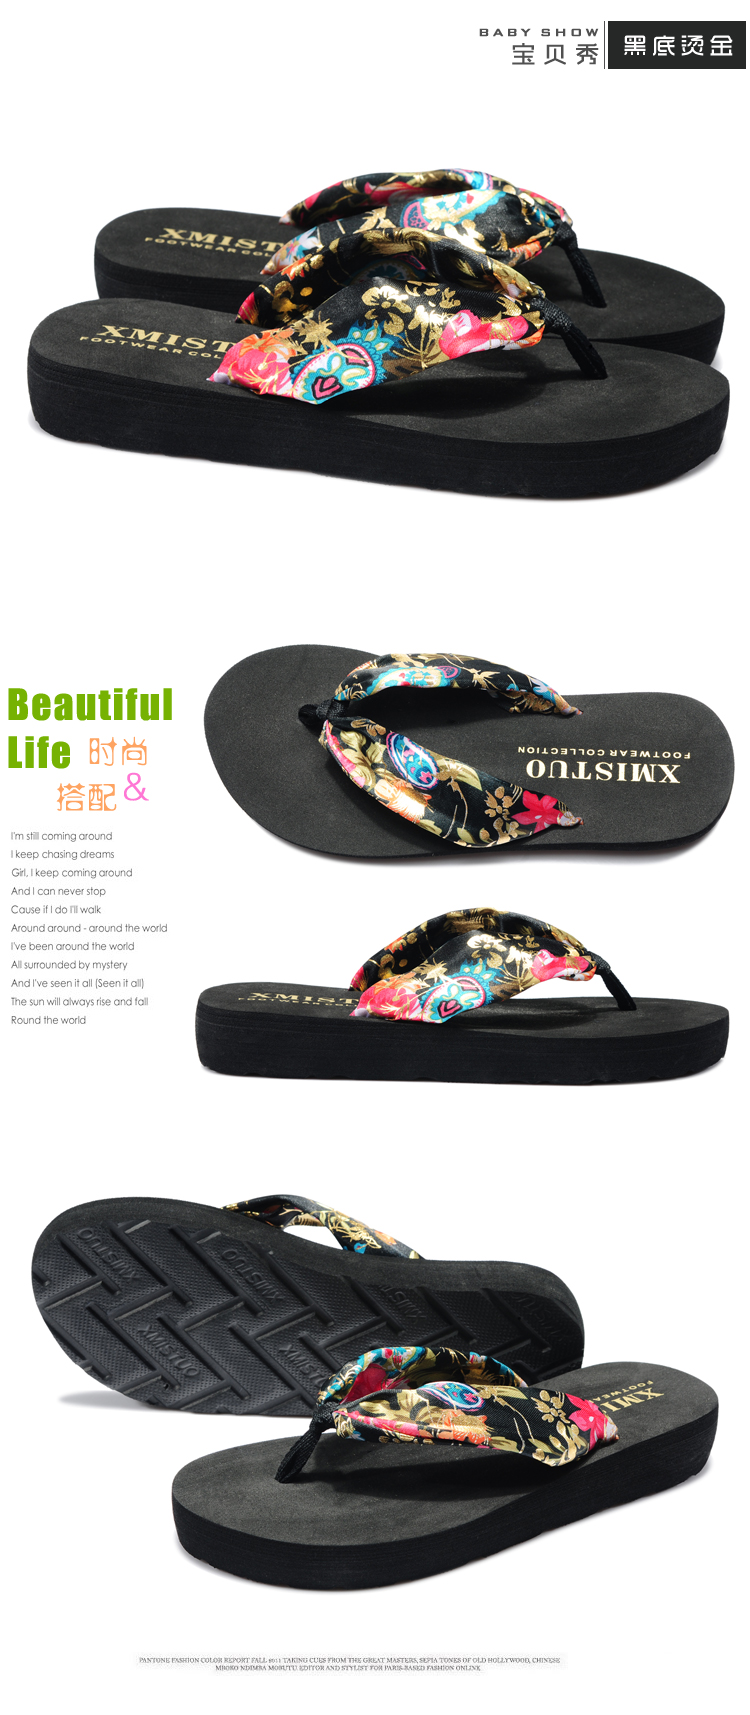 Plastic Fashionflip flop(Black - 6 yards) NHXW0180-Black - 6 yards